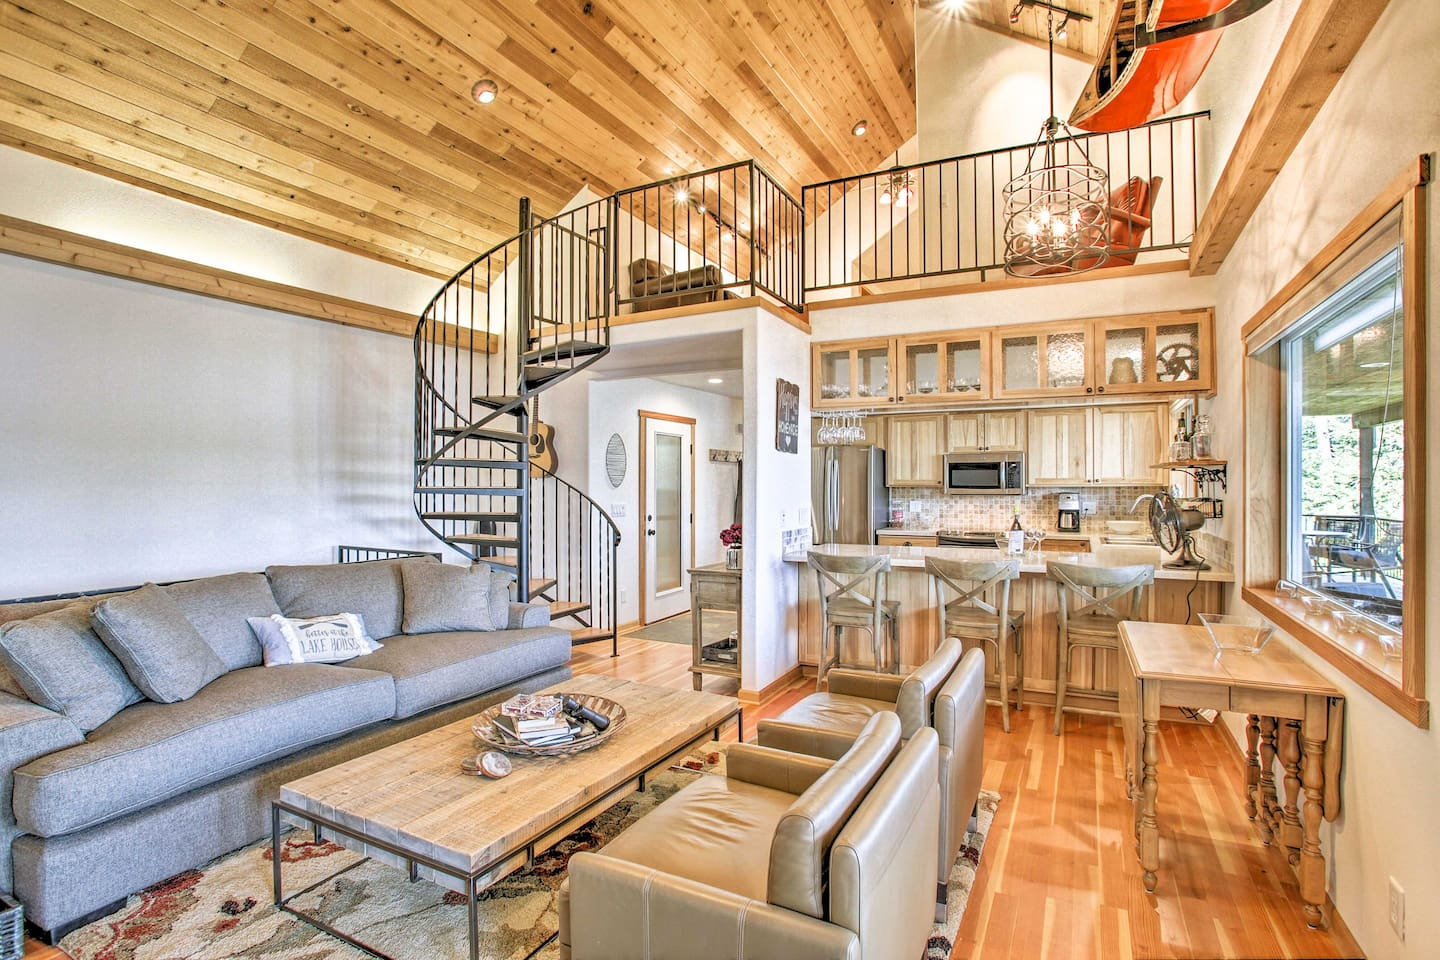 With 2,000 square feet, this home welcomes 10 to experience lakefront living!